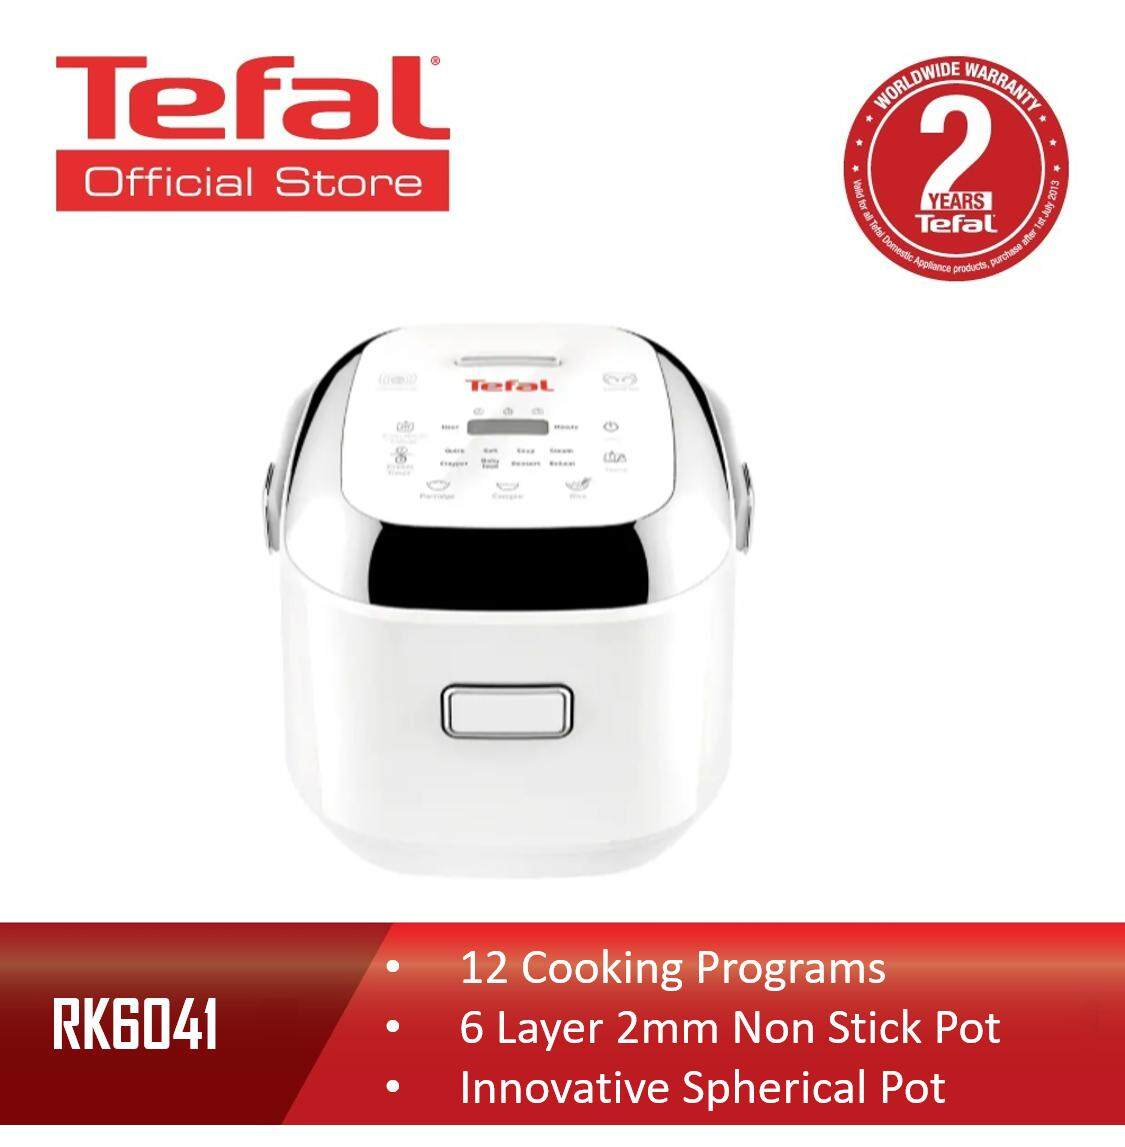 Tefal Fuzzy Logic 6 Layers IH Mini Spherical Pot 12 Cooking Programs Rice Cooker 0.7L RK6041